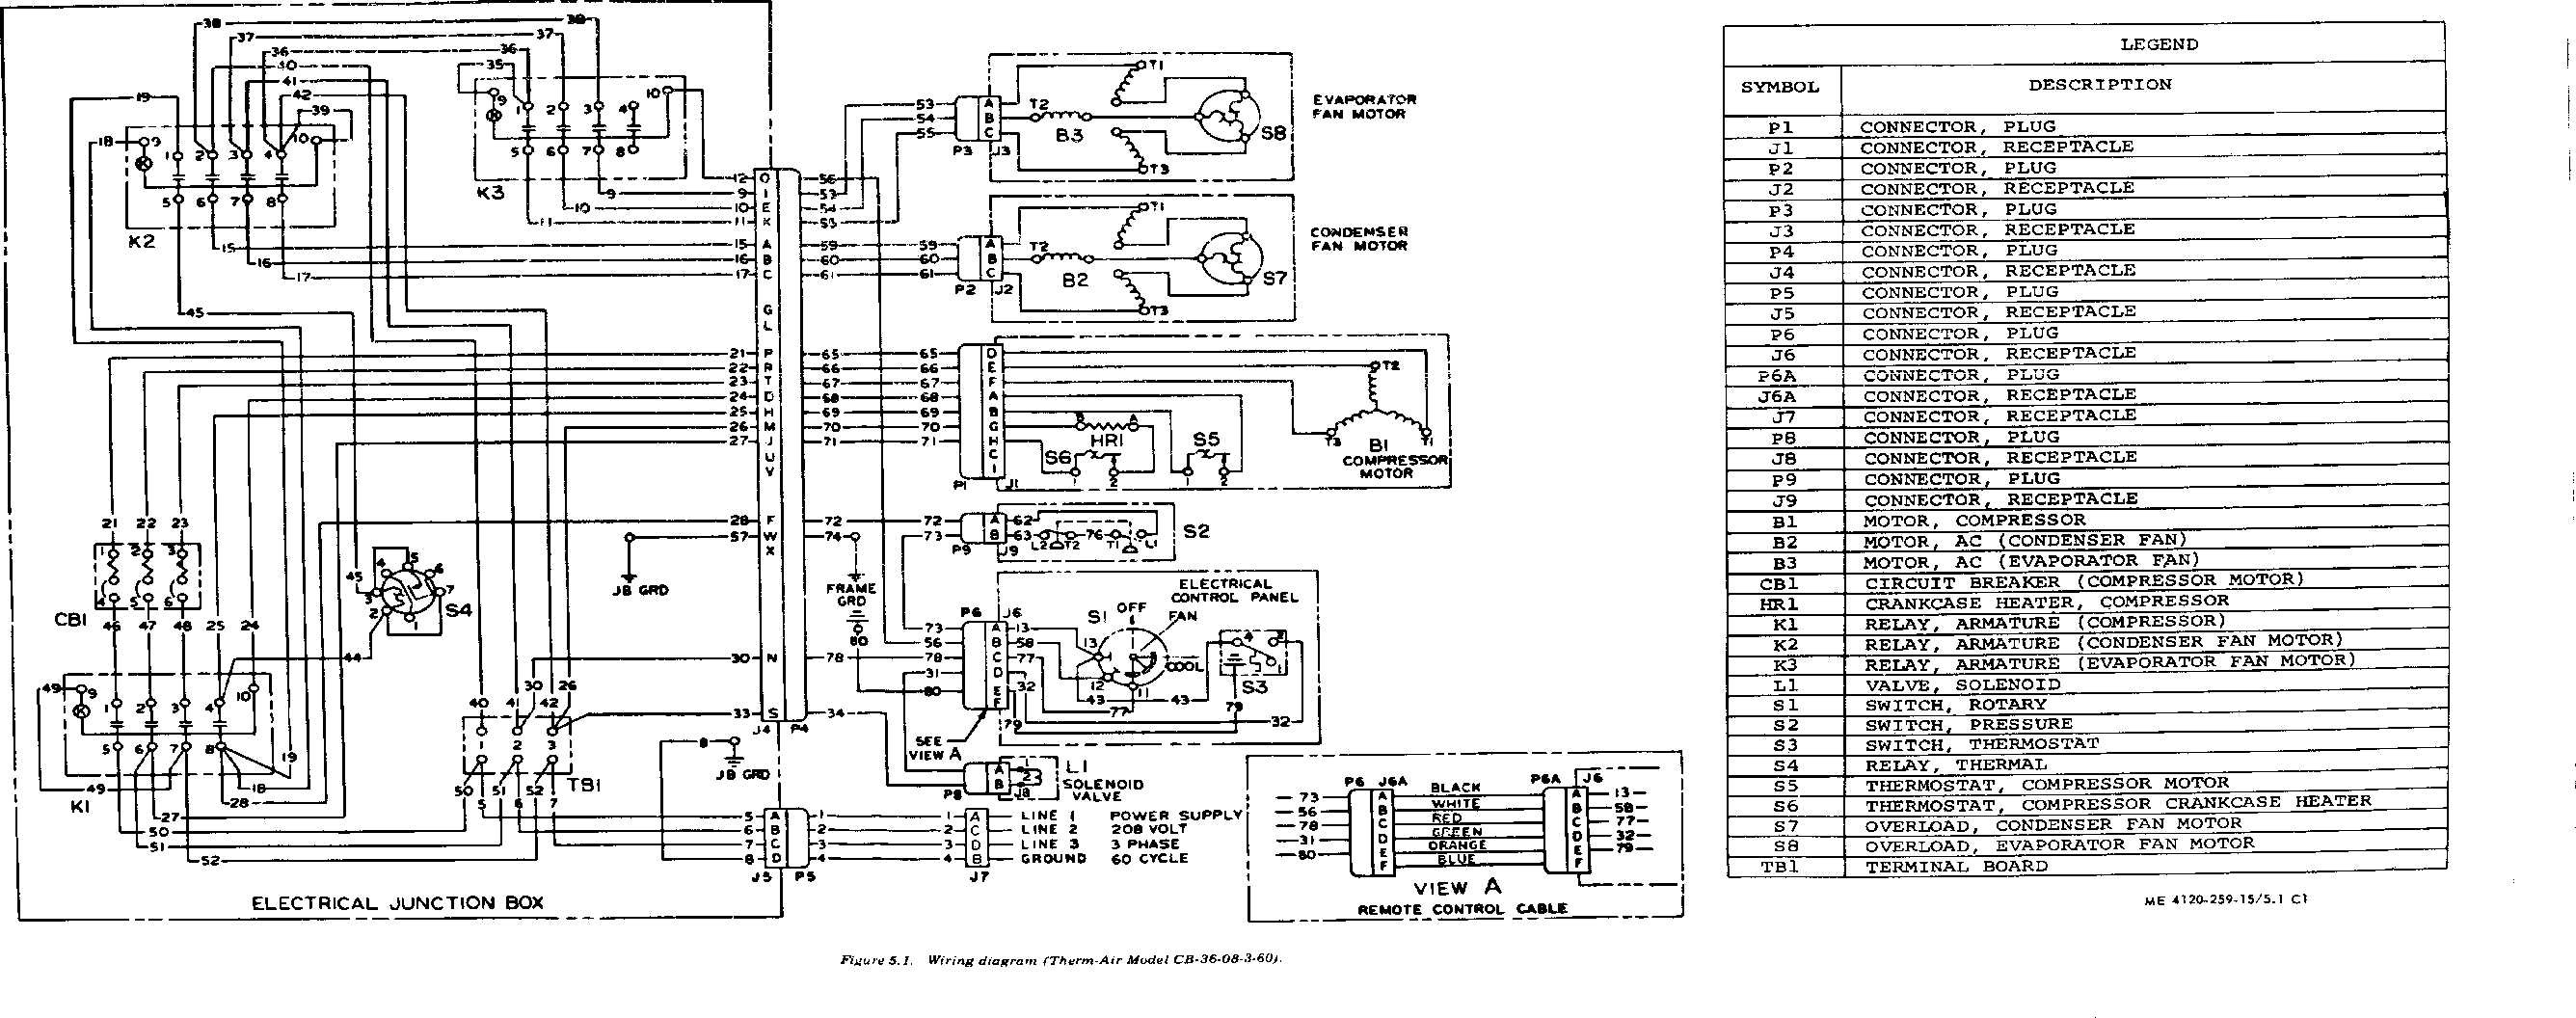 trane xr13 wiring diagram Download-Trane Xr13 Wiring Diagram Popular Carrier Heat Pump Wiring Diagram & Hvac Why Does My Heat Pump Wiring 3-b